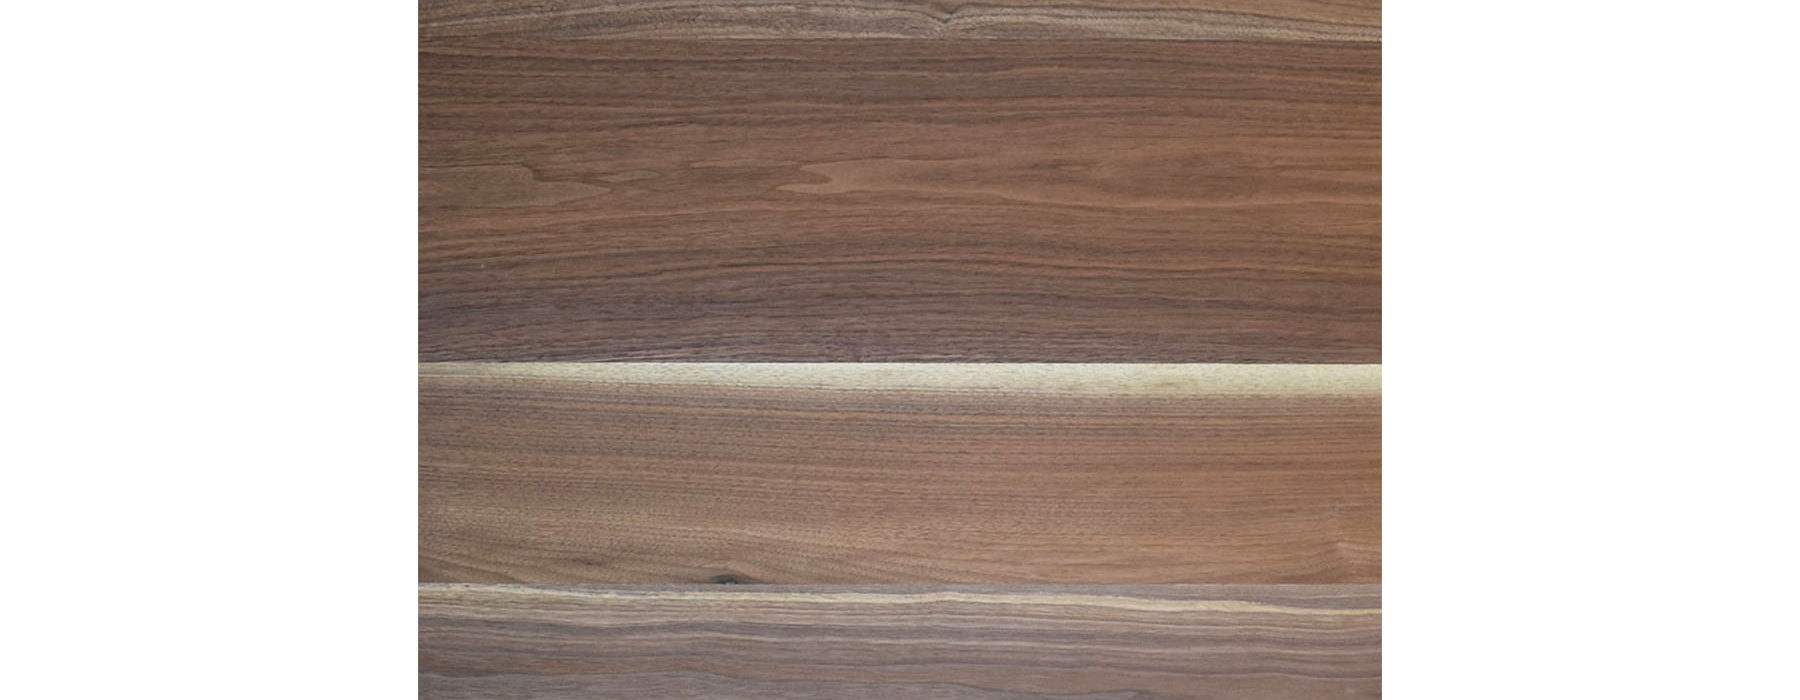 ROUGH STEP WALNUT ROUGH